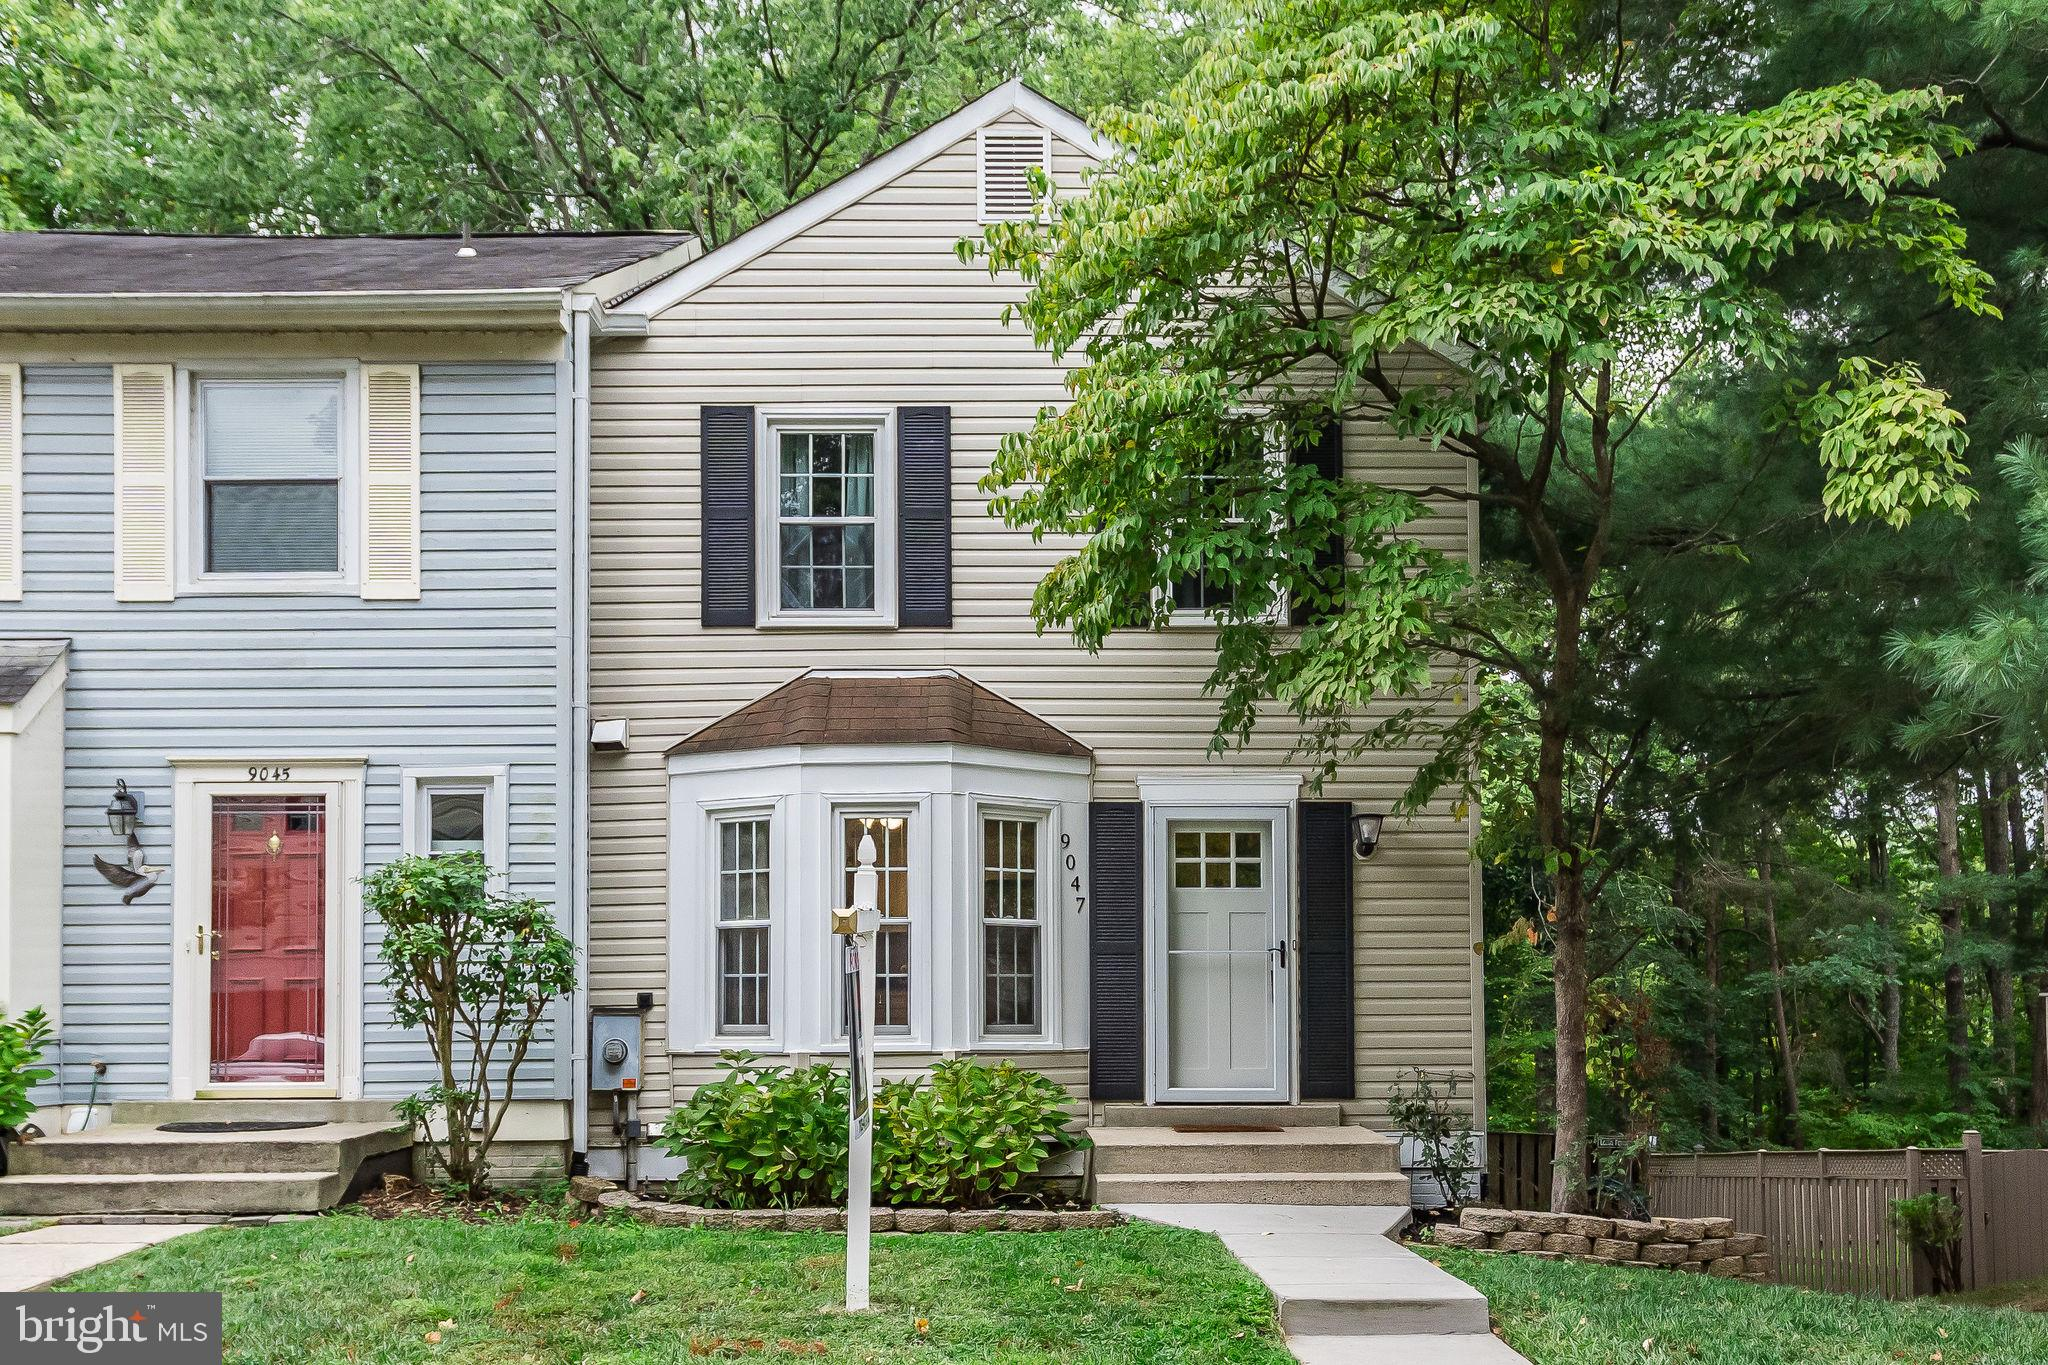 This one is extra special through and through! You're going to fall in love the moment you open the door. Many extra special details have been thoughtfully created starting with the entry nook designed to neatly organize your morning exodus and evening homecoming. Beyond the entry, just about everything in this beautiful home has been recently updated, upgraded and refreshed. All Flooring has just been replaced,  Completely Freshly Painted and New Lighting Fixtures throughout.  The Kitchen has just been completely made over with all new cabinetry and granite counters.  Newer Stainless Appliance Package included! The floor plan is open and airy and simply inviting.  All Baths have been upgraded very recently! The specialty nooks make storage and displaying easy and manageable! Once you enter...you won't want to leave.  Well, maybe you will want to leave to explore the natural beauty of Huntsman Lake which is just steps from your back yard.  You'll even have winter views of the lake from your private balcony off of the Living Room.  Or, you'll enjoy watching the birds and wildlife during the Spring and Summer months. Either way, its a bonus. Don't wait too long, I doubt this one will last long.